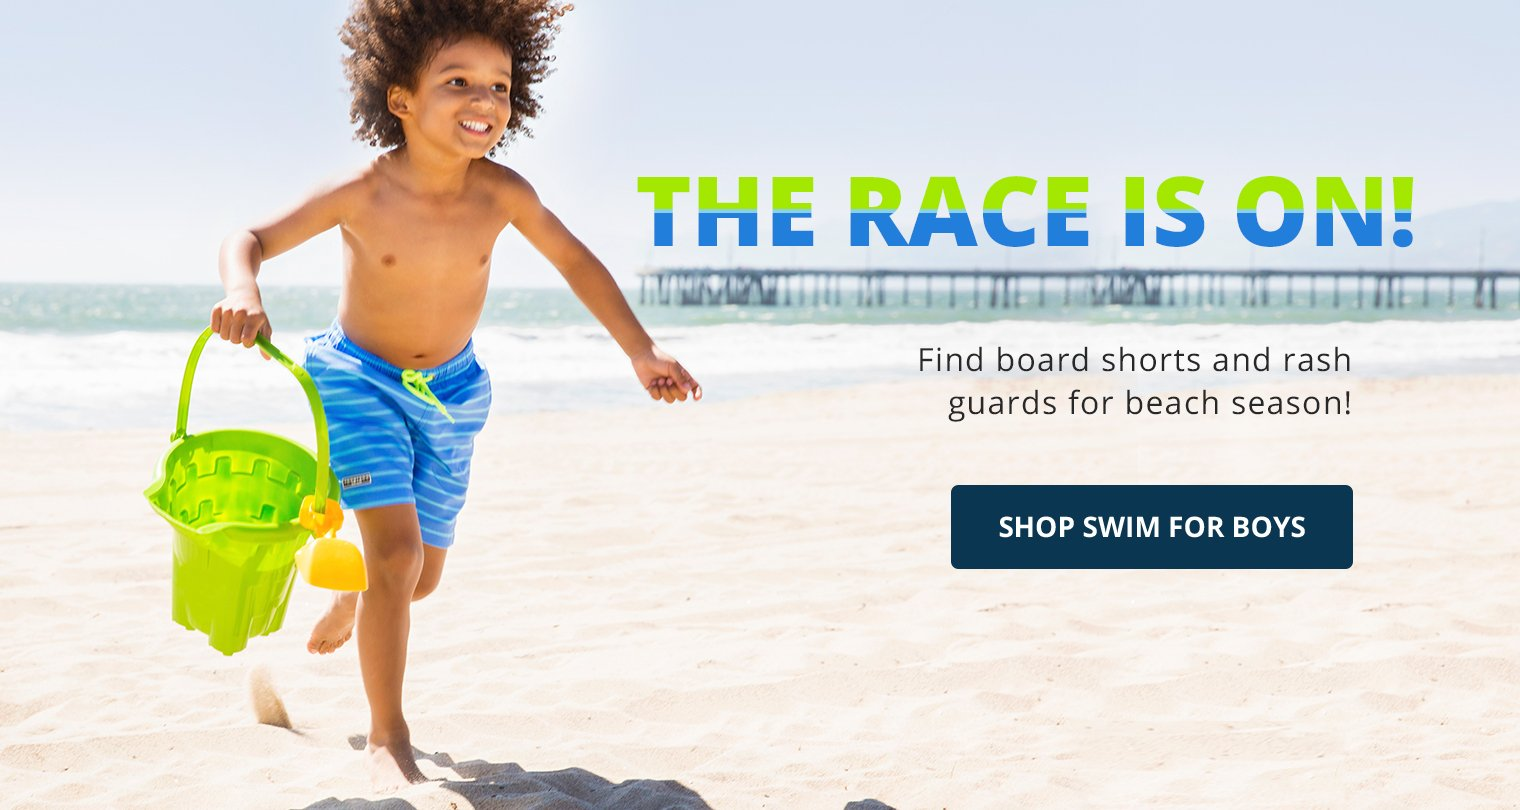 The Race is On! Find board shorts and rash guards for beach season! Shop swim for boys.